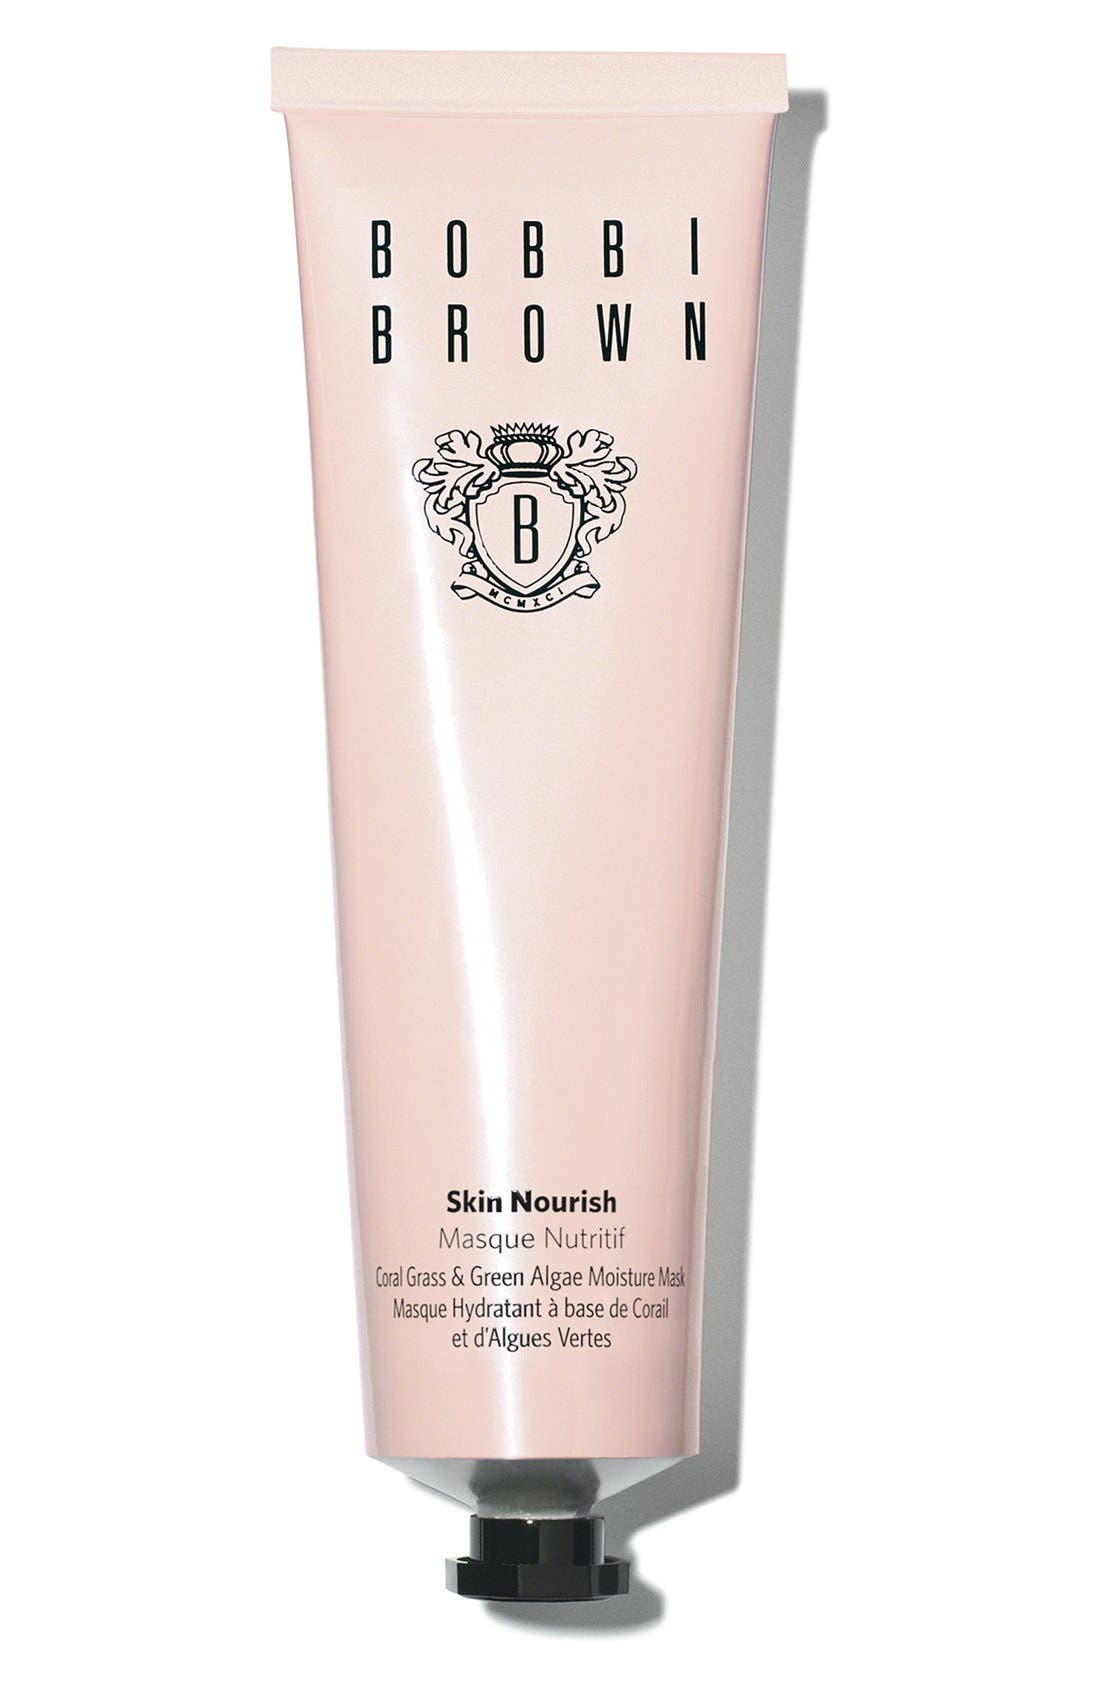 Bobbi Brown 'Skin Nourish' Mask